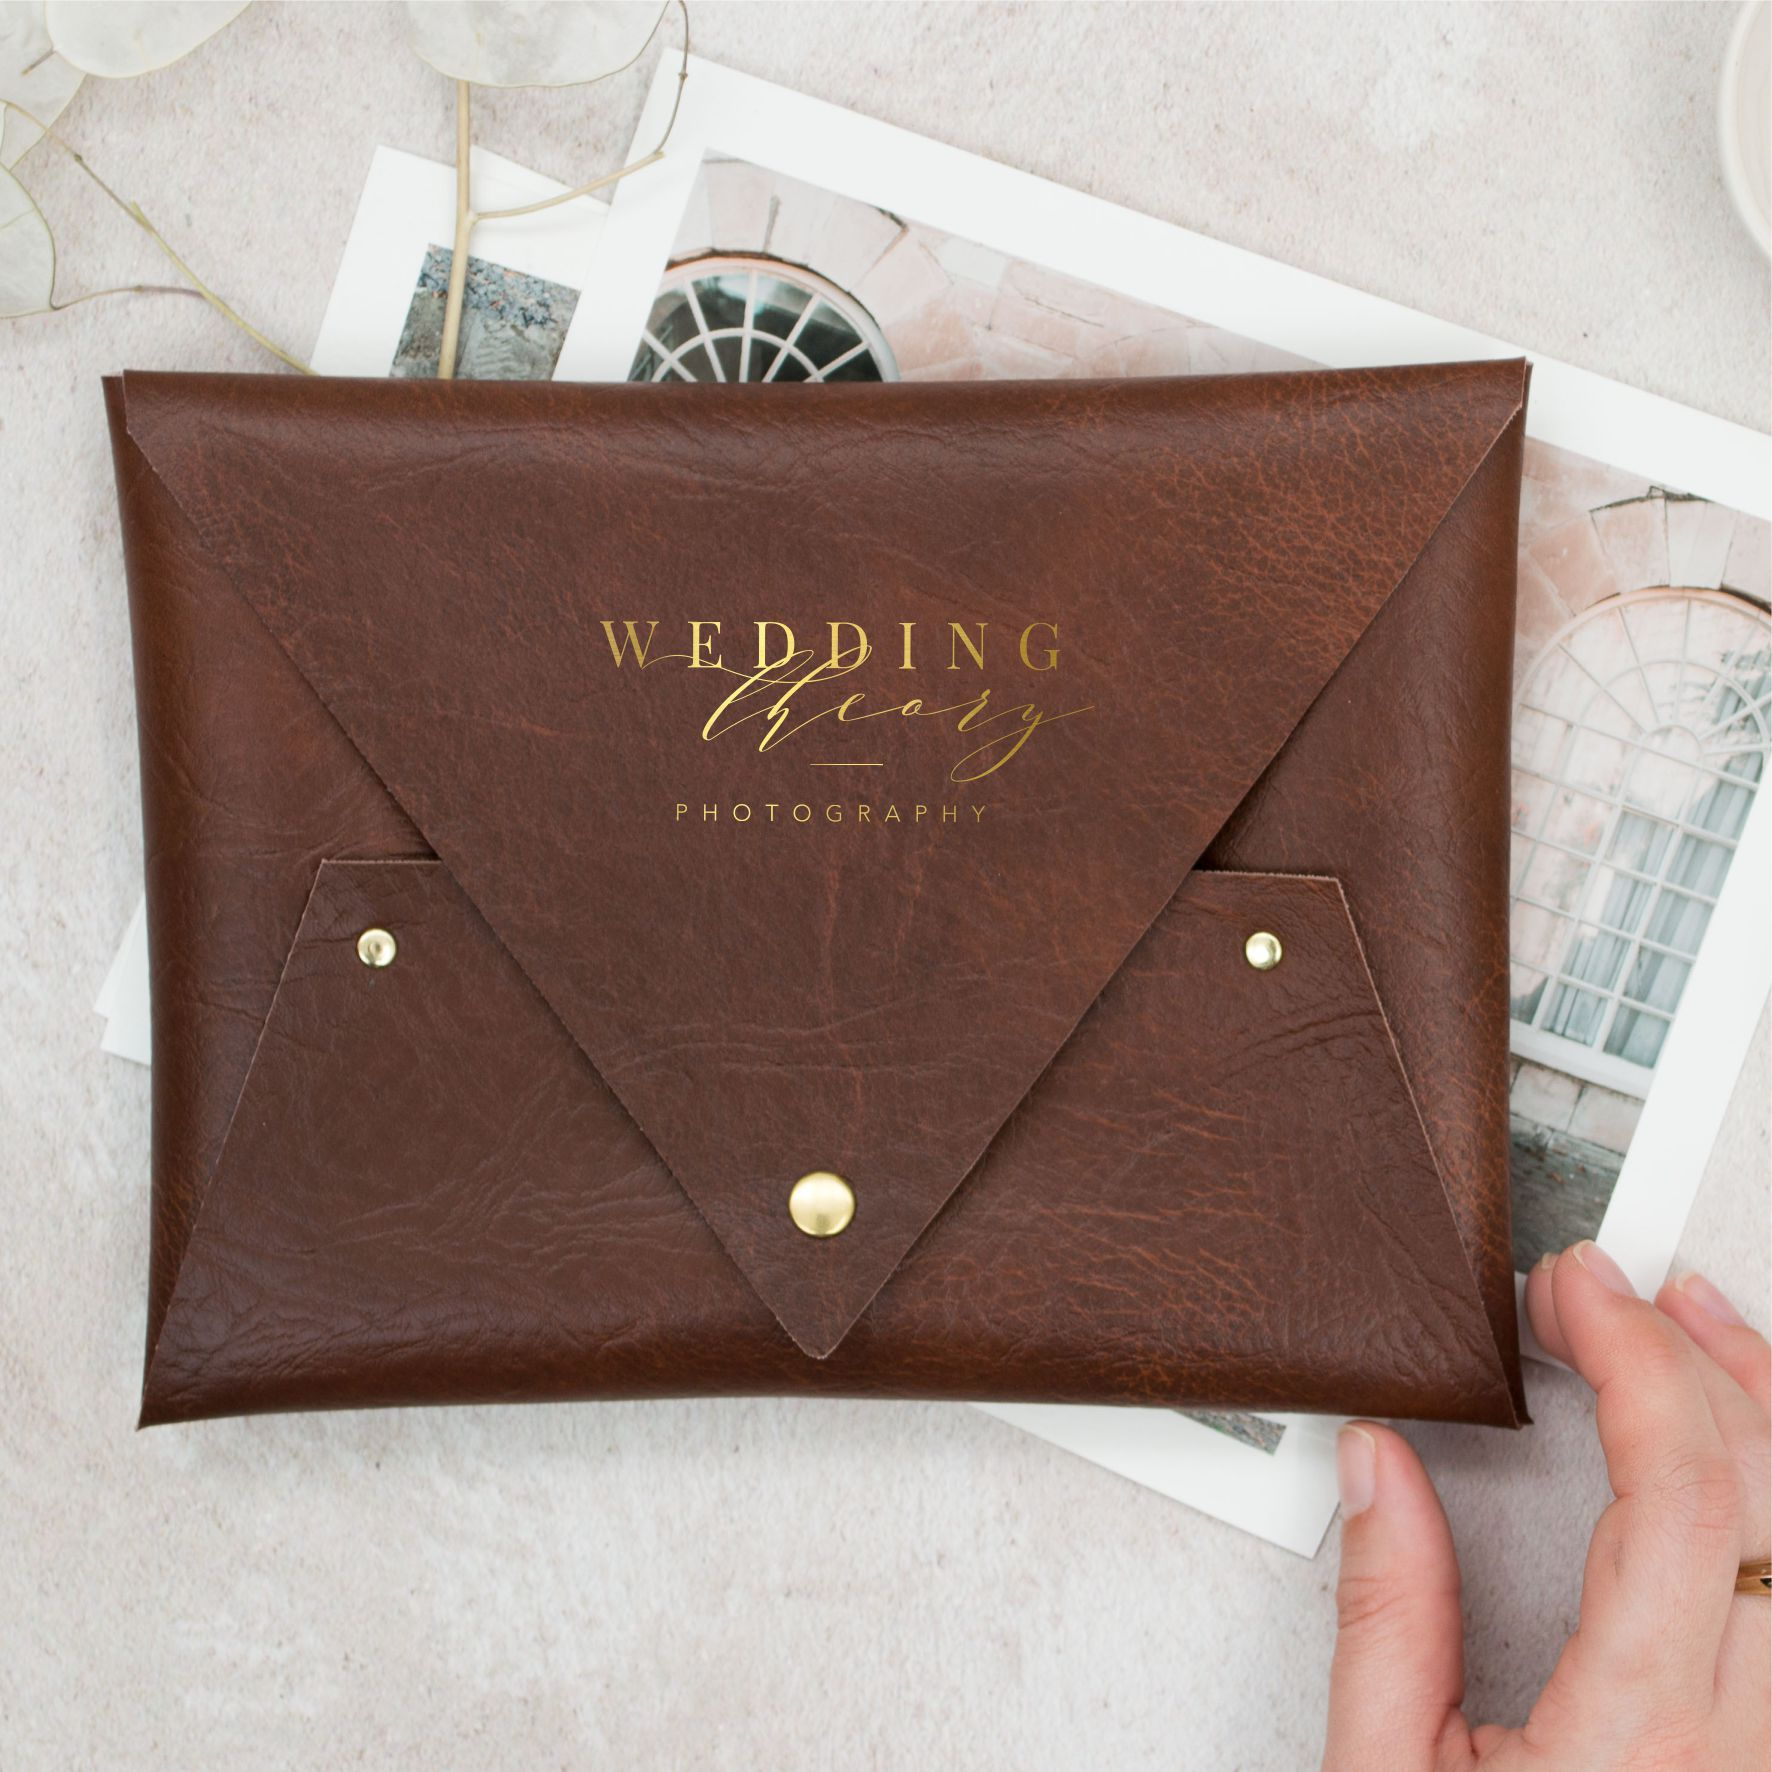 Molly_And_Tom_Print_Pouch_Chestnut_Fine_art_Photography_Wedding_Photography_Packaging.jpg